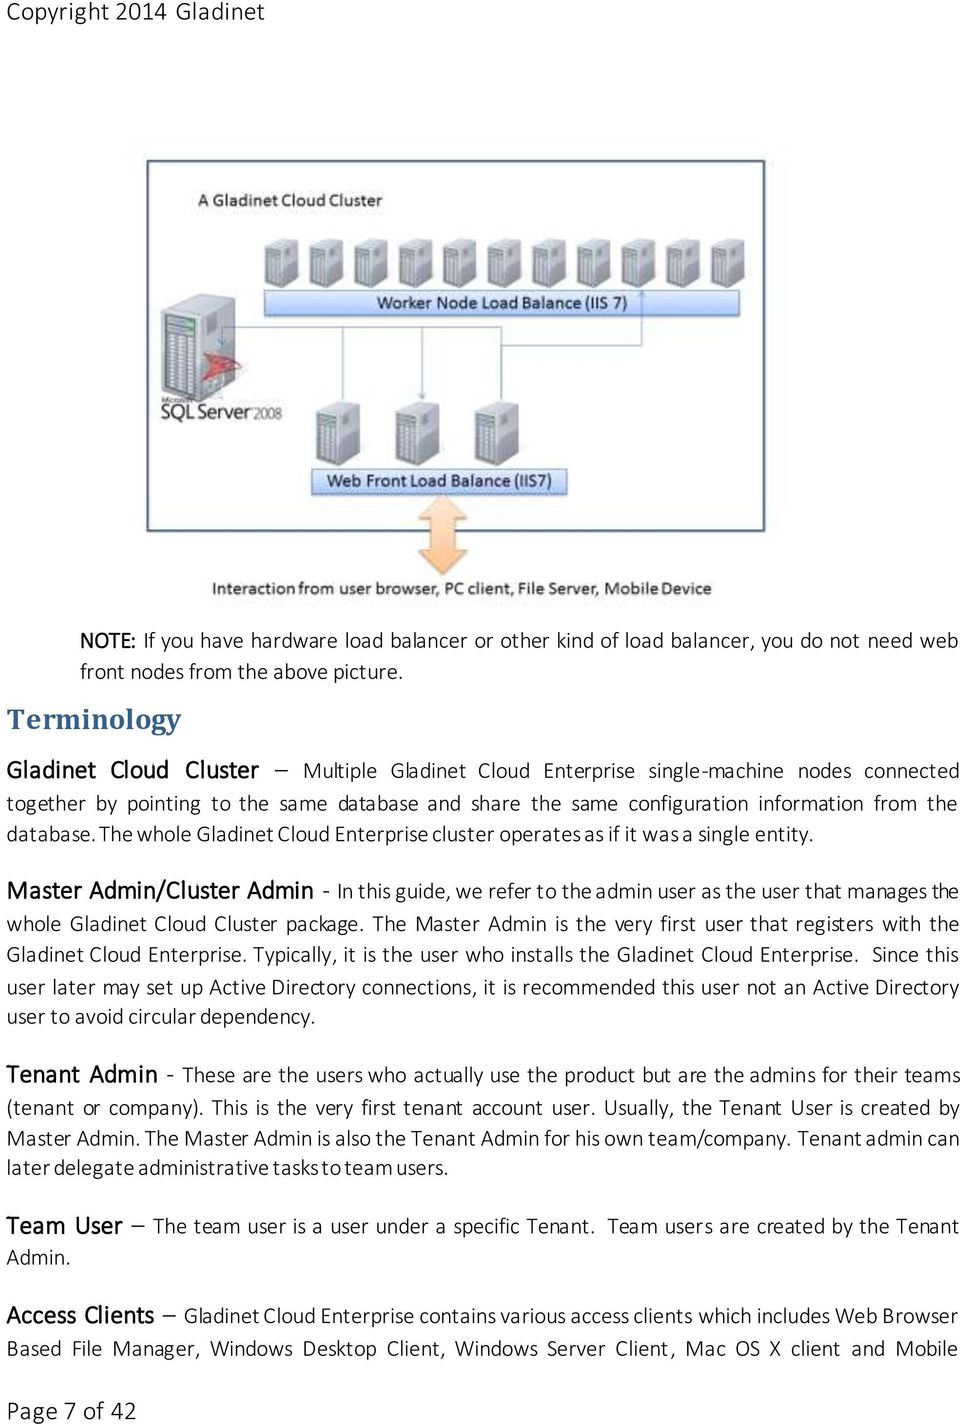 database. The whole Gladinet Cloud Enterprise cluster operates as if it was a single entity.